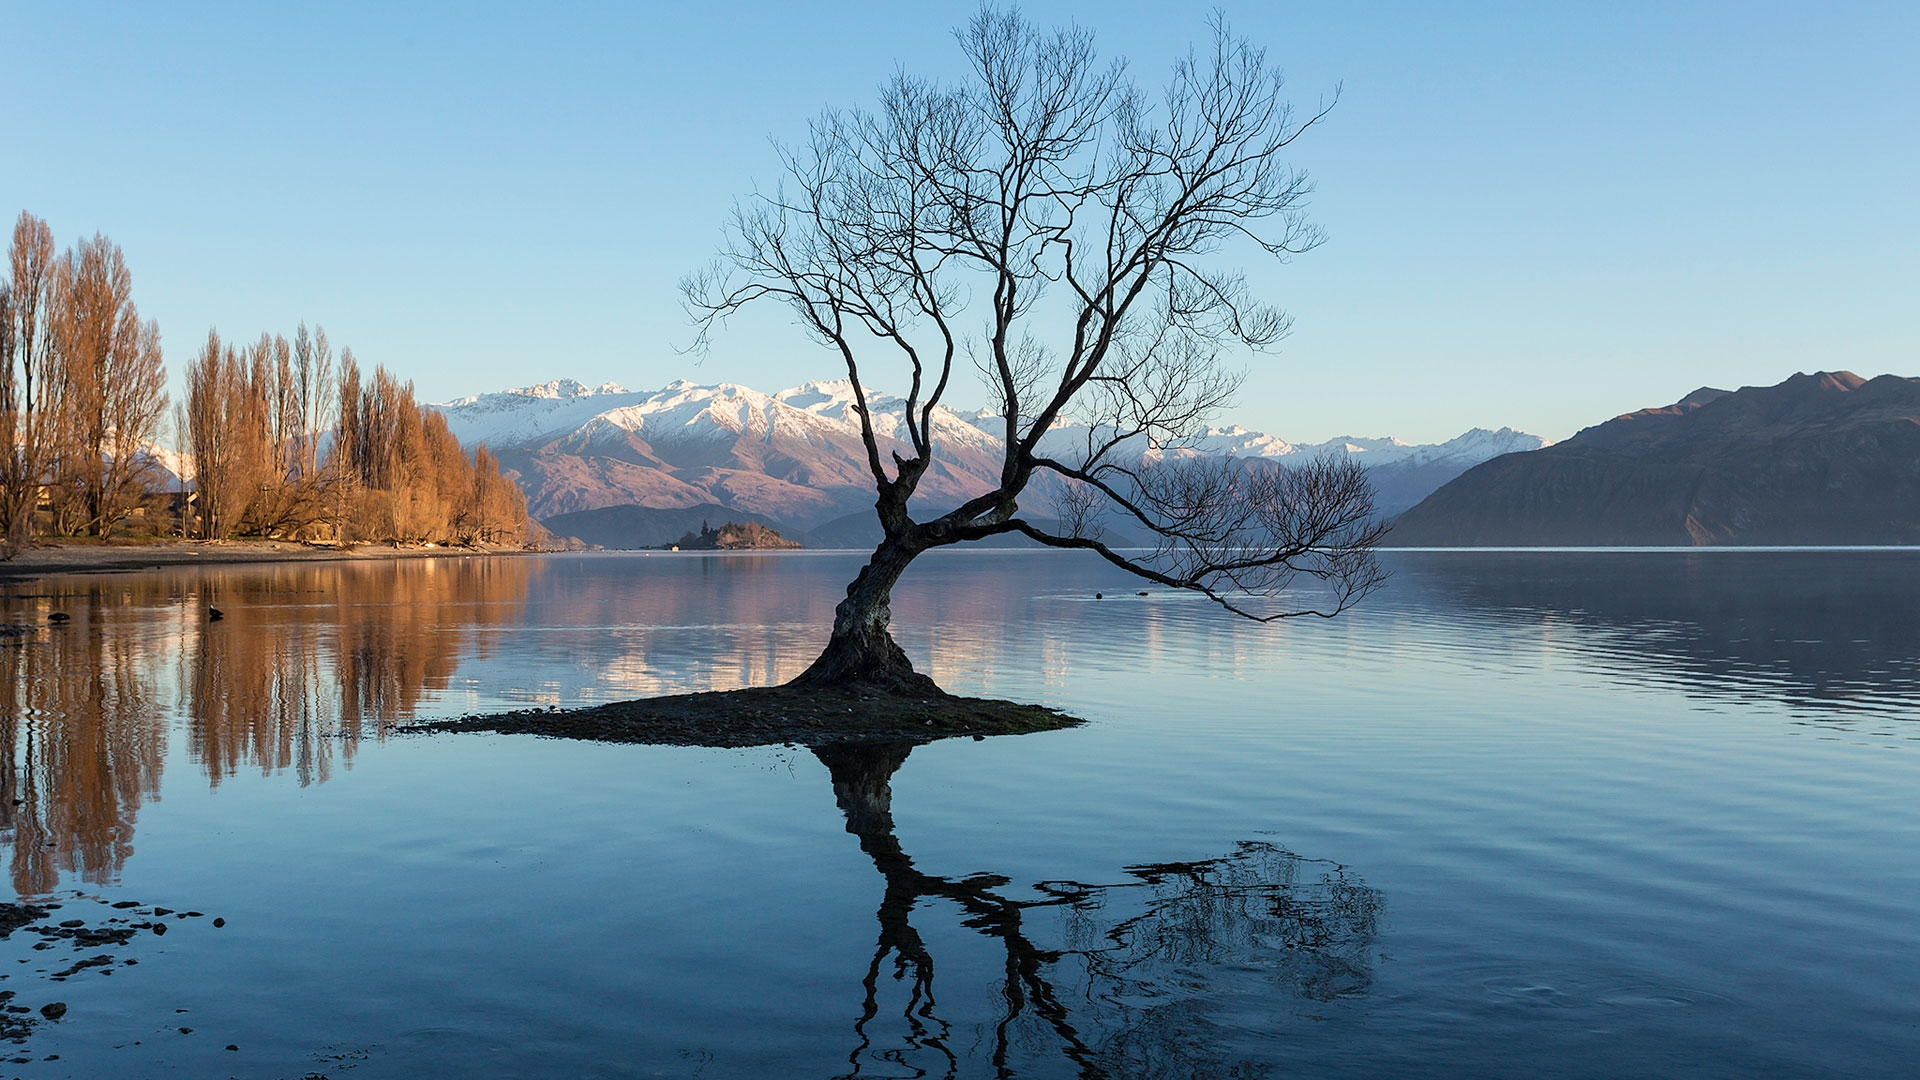 Small Group Tours - The best small group tour from Queenstown